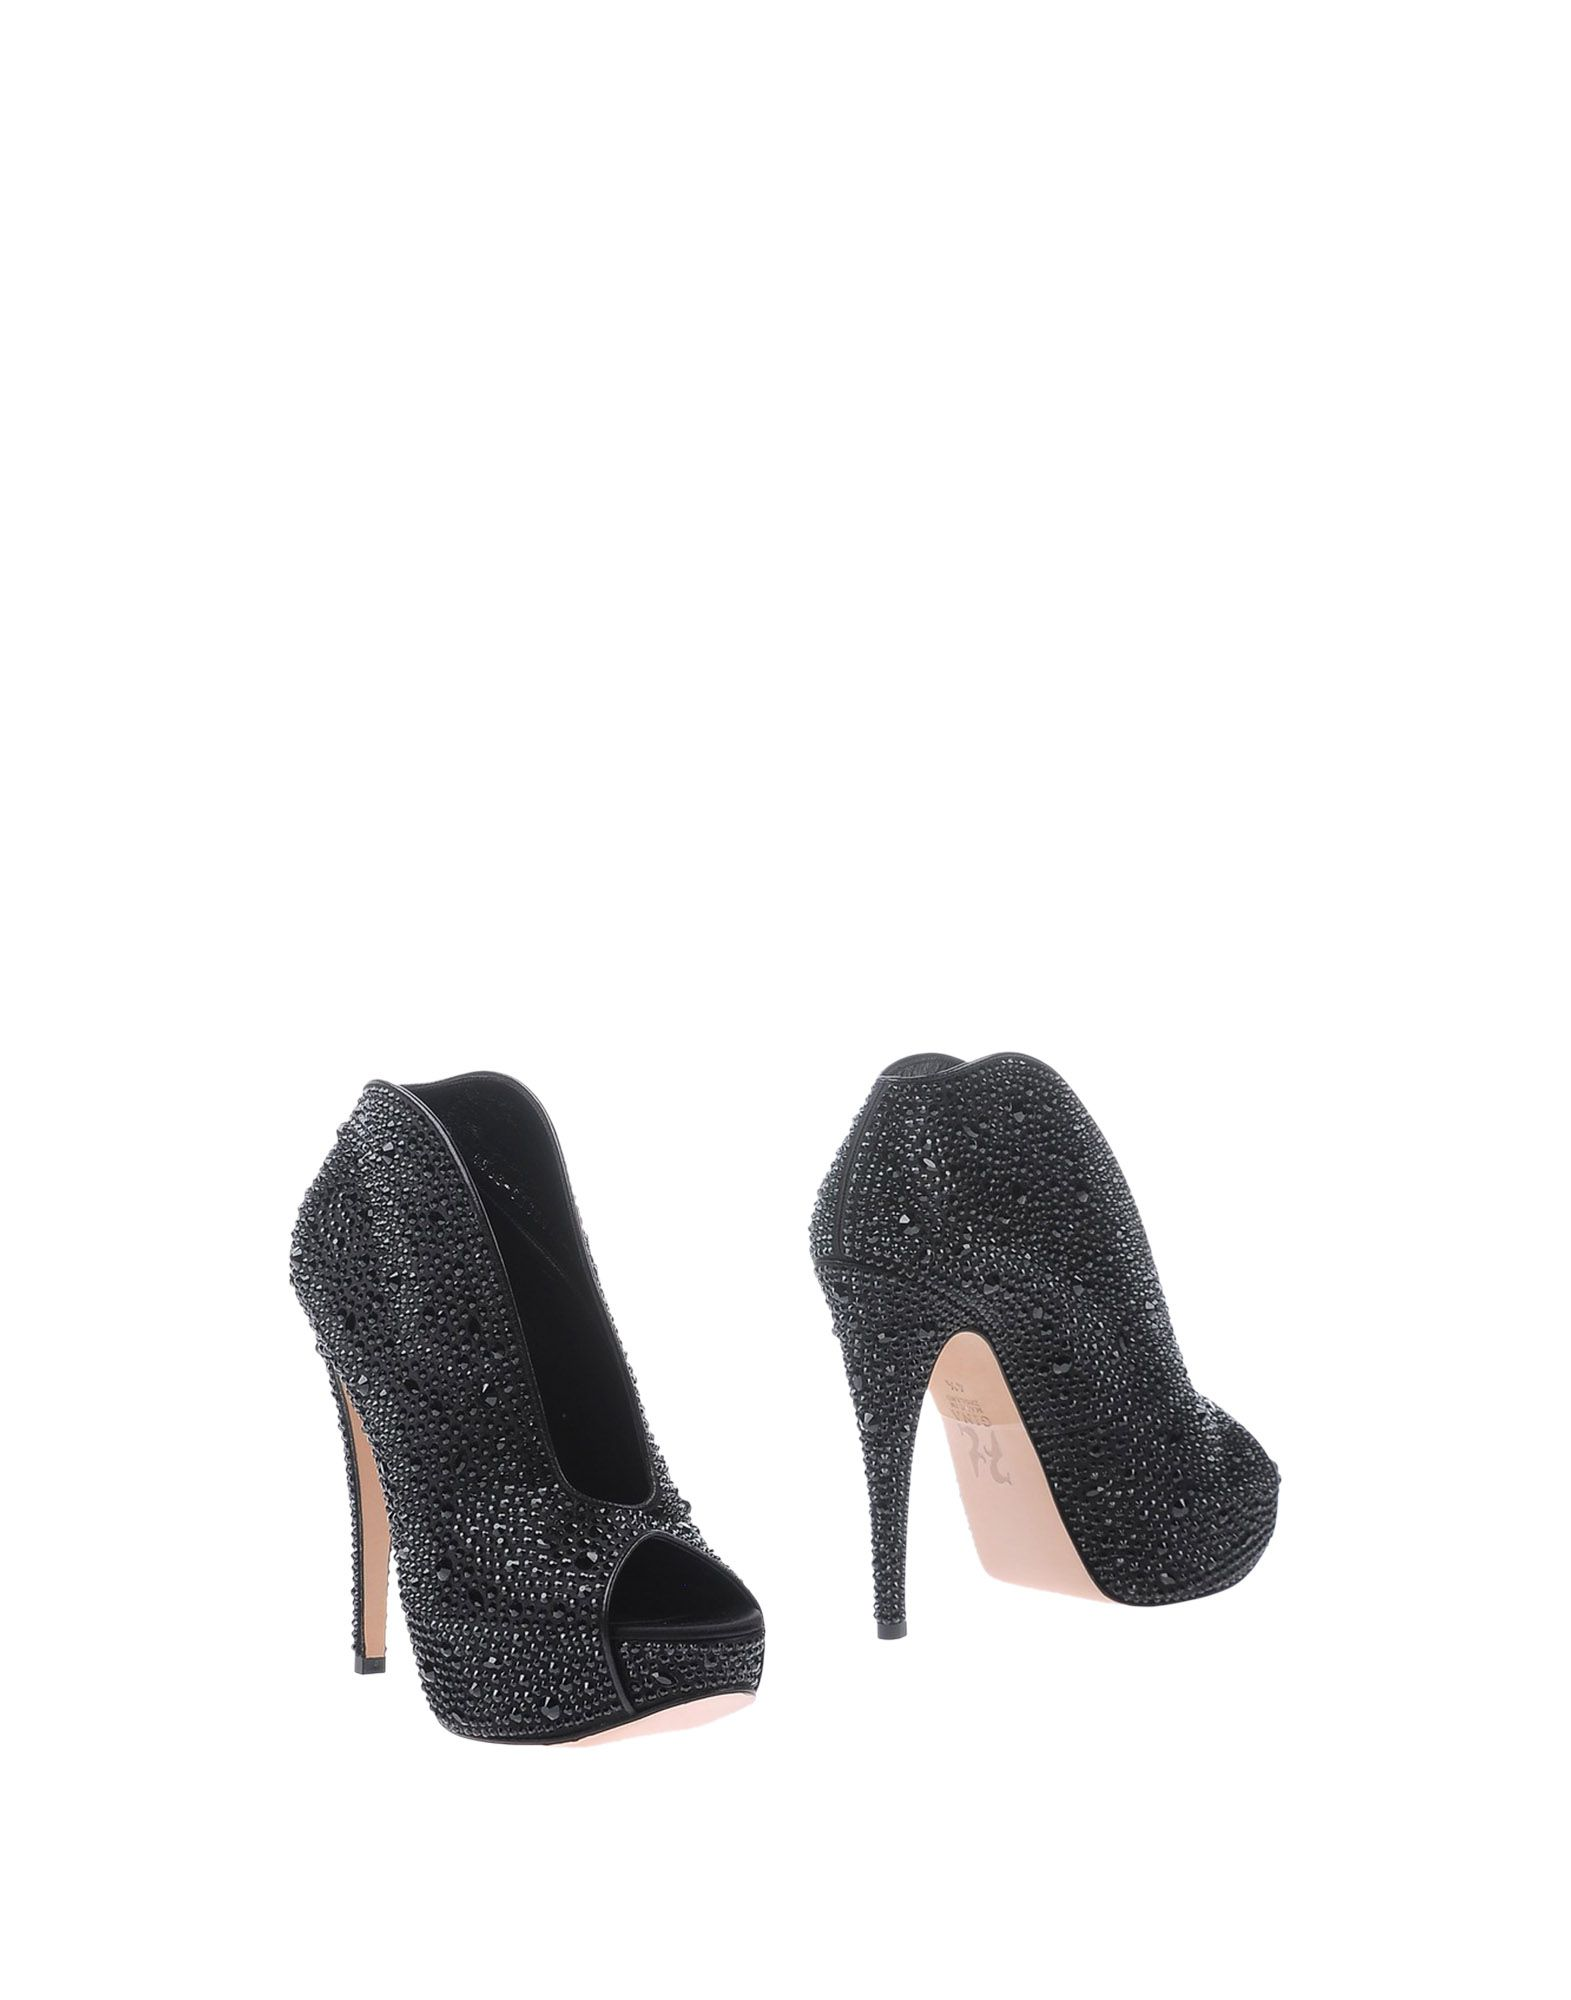 GINA Ankle Boot in Black